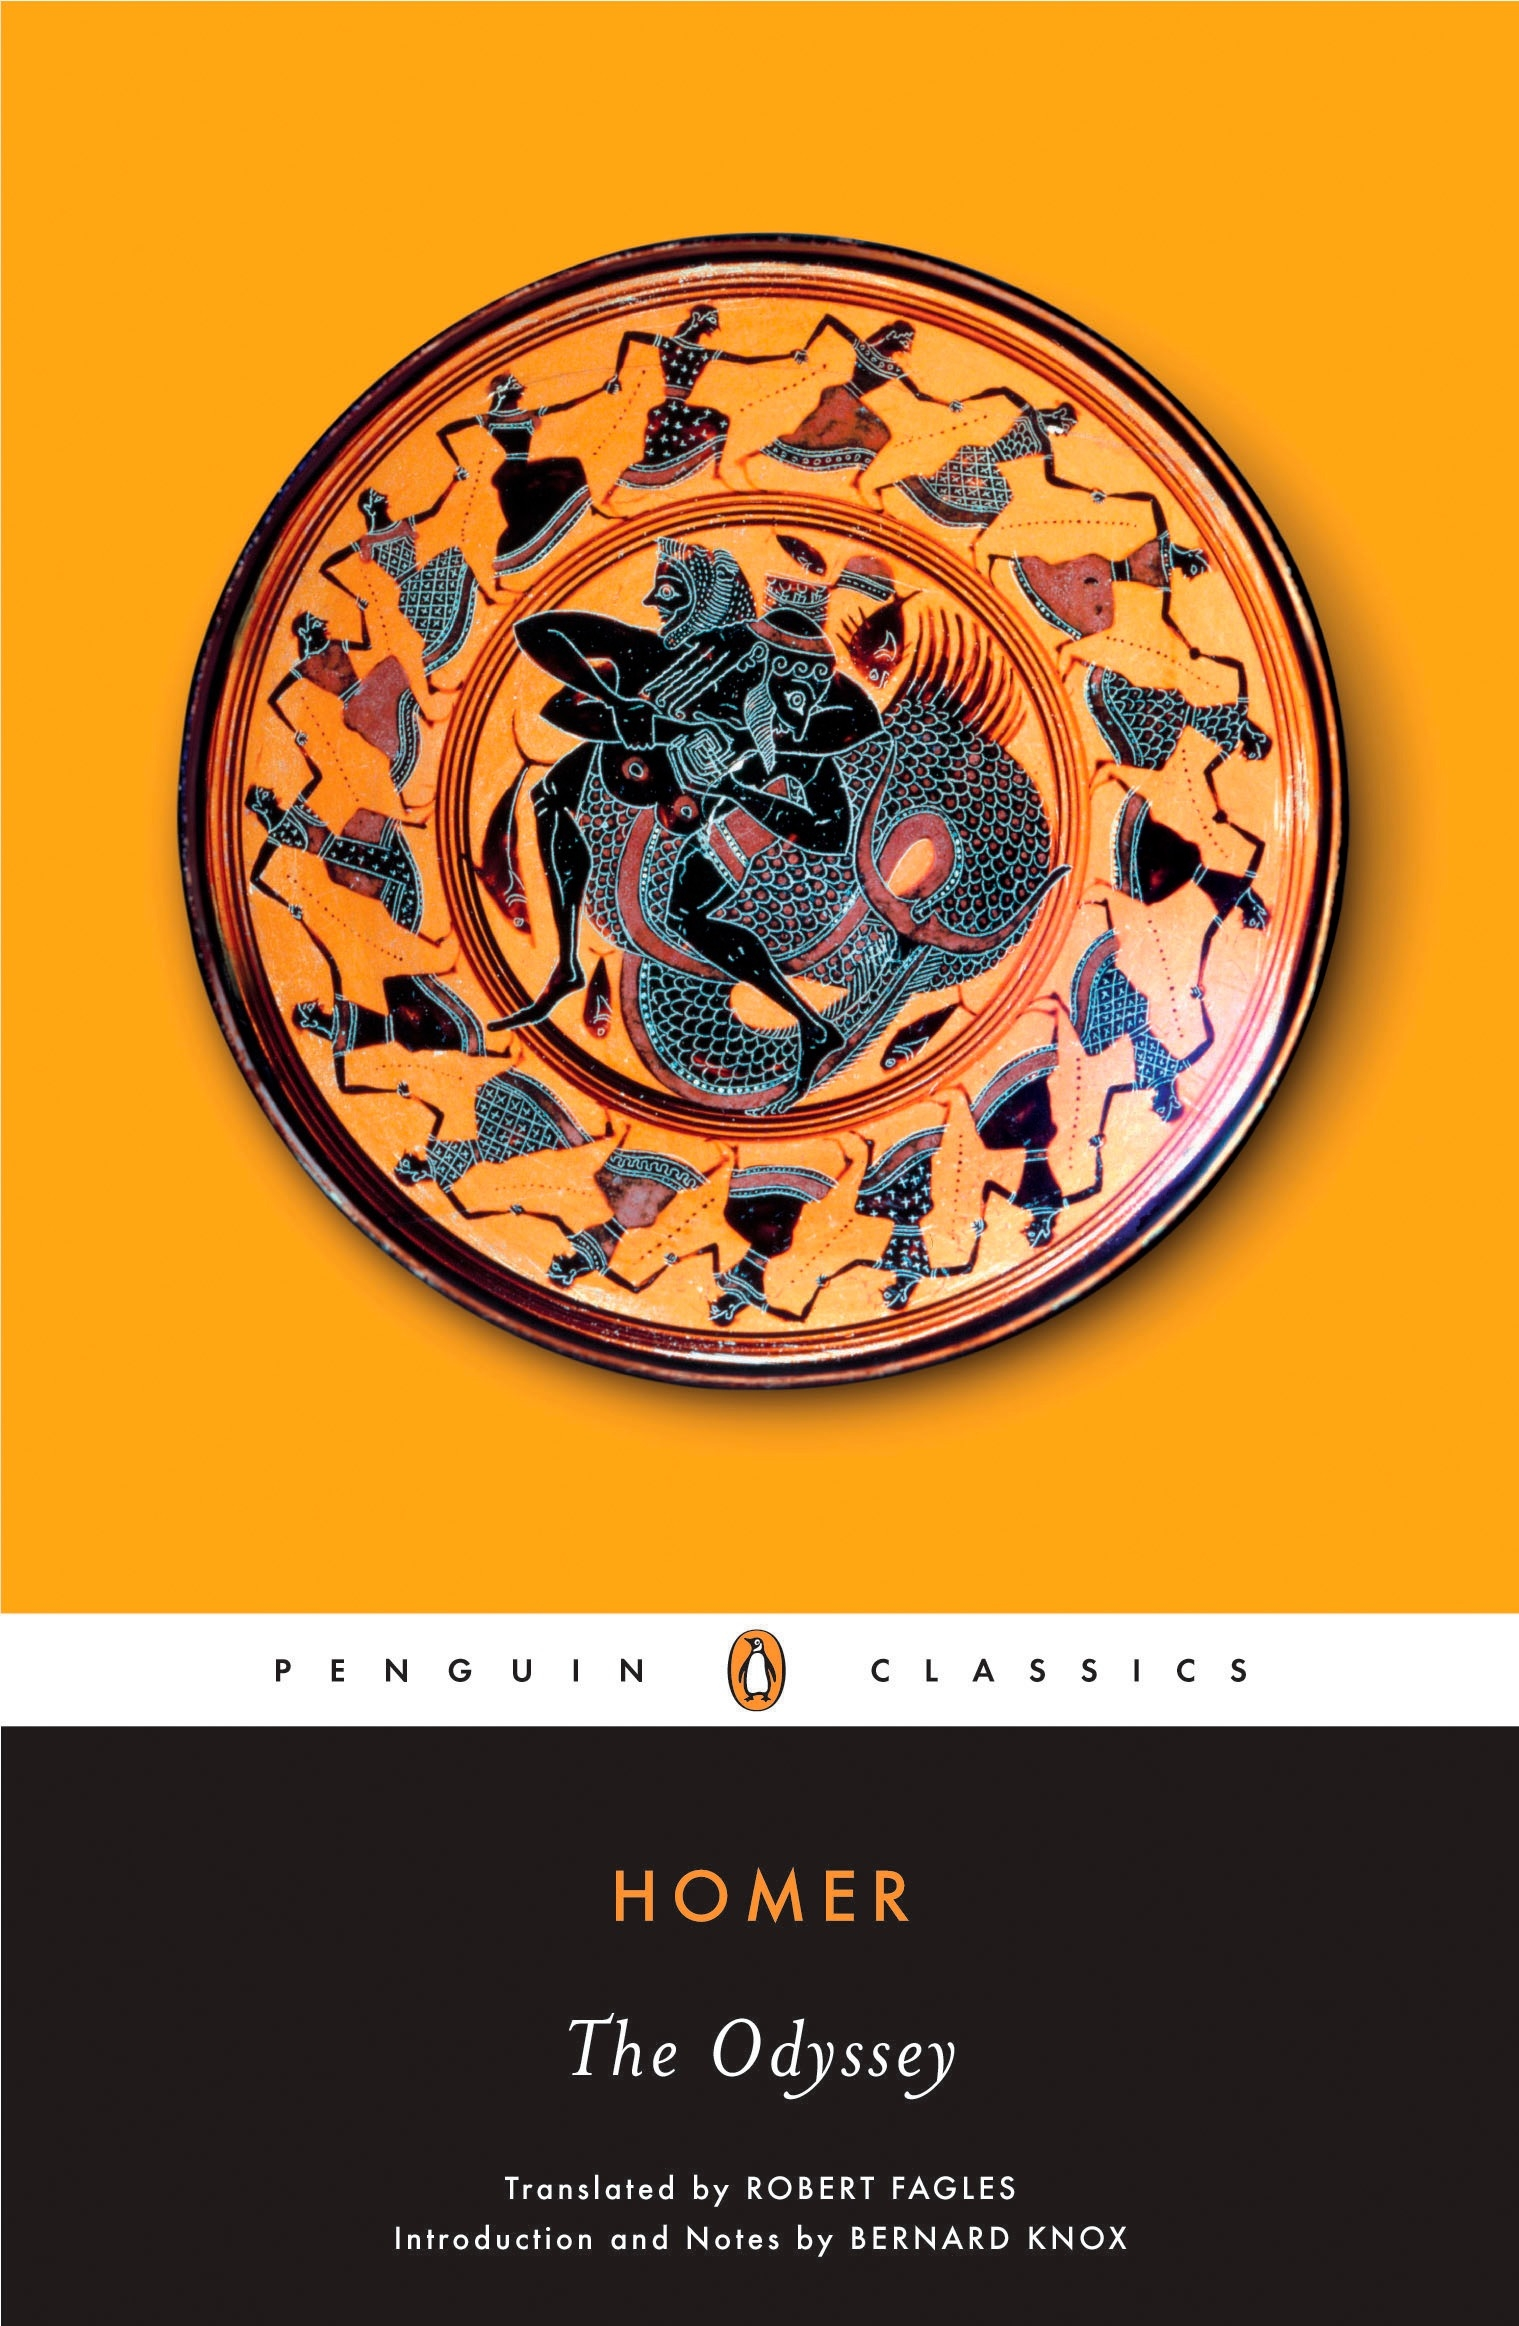 an analysis of the book the odyssey by homer Author, homer language, greek genre(s)  1 the odyssey character  summaries 2 the odyssey book summaries 21 book 1 22 book 2.